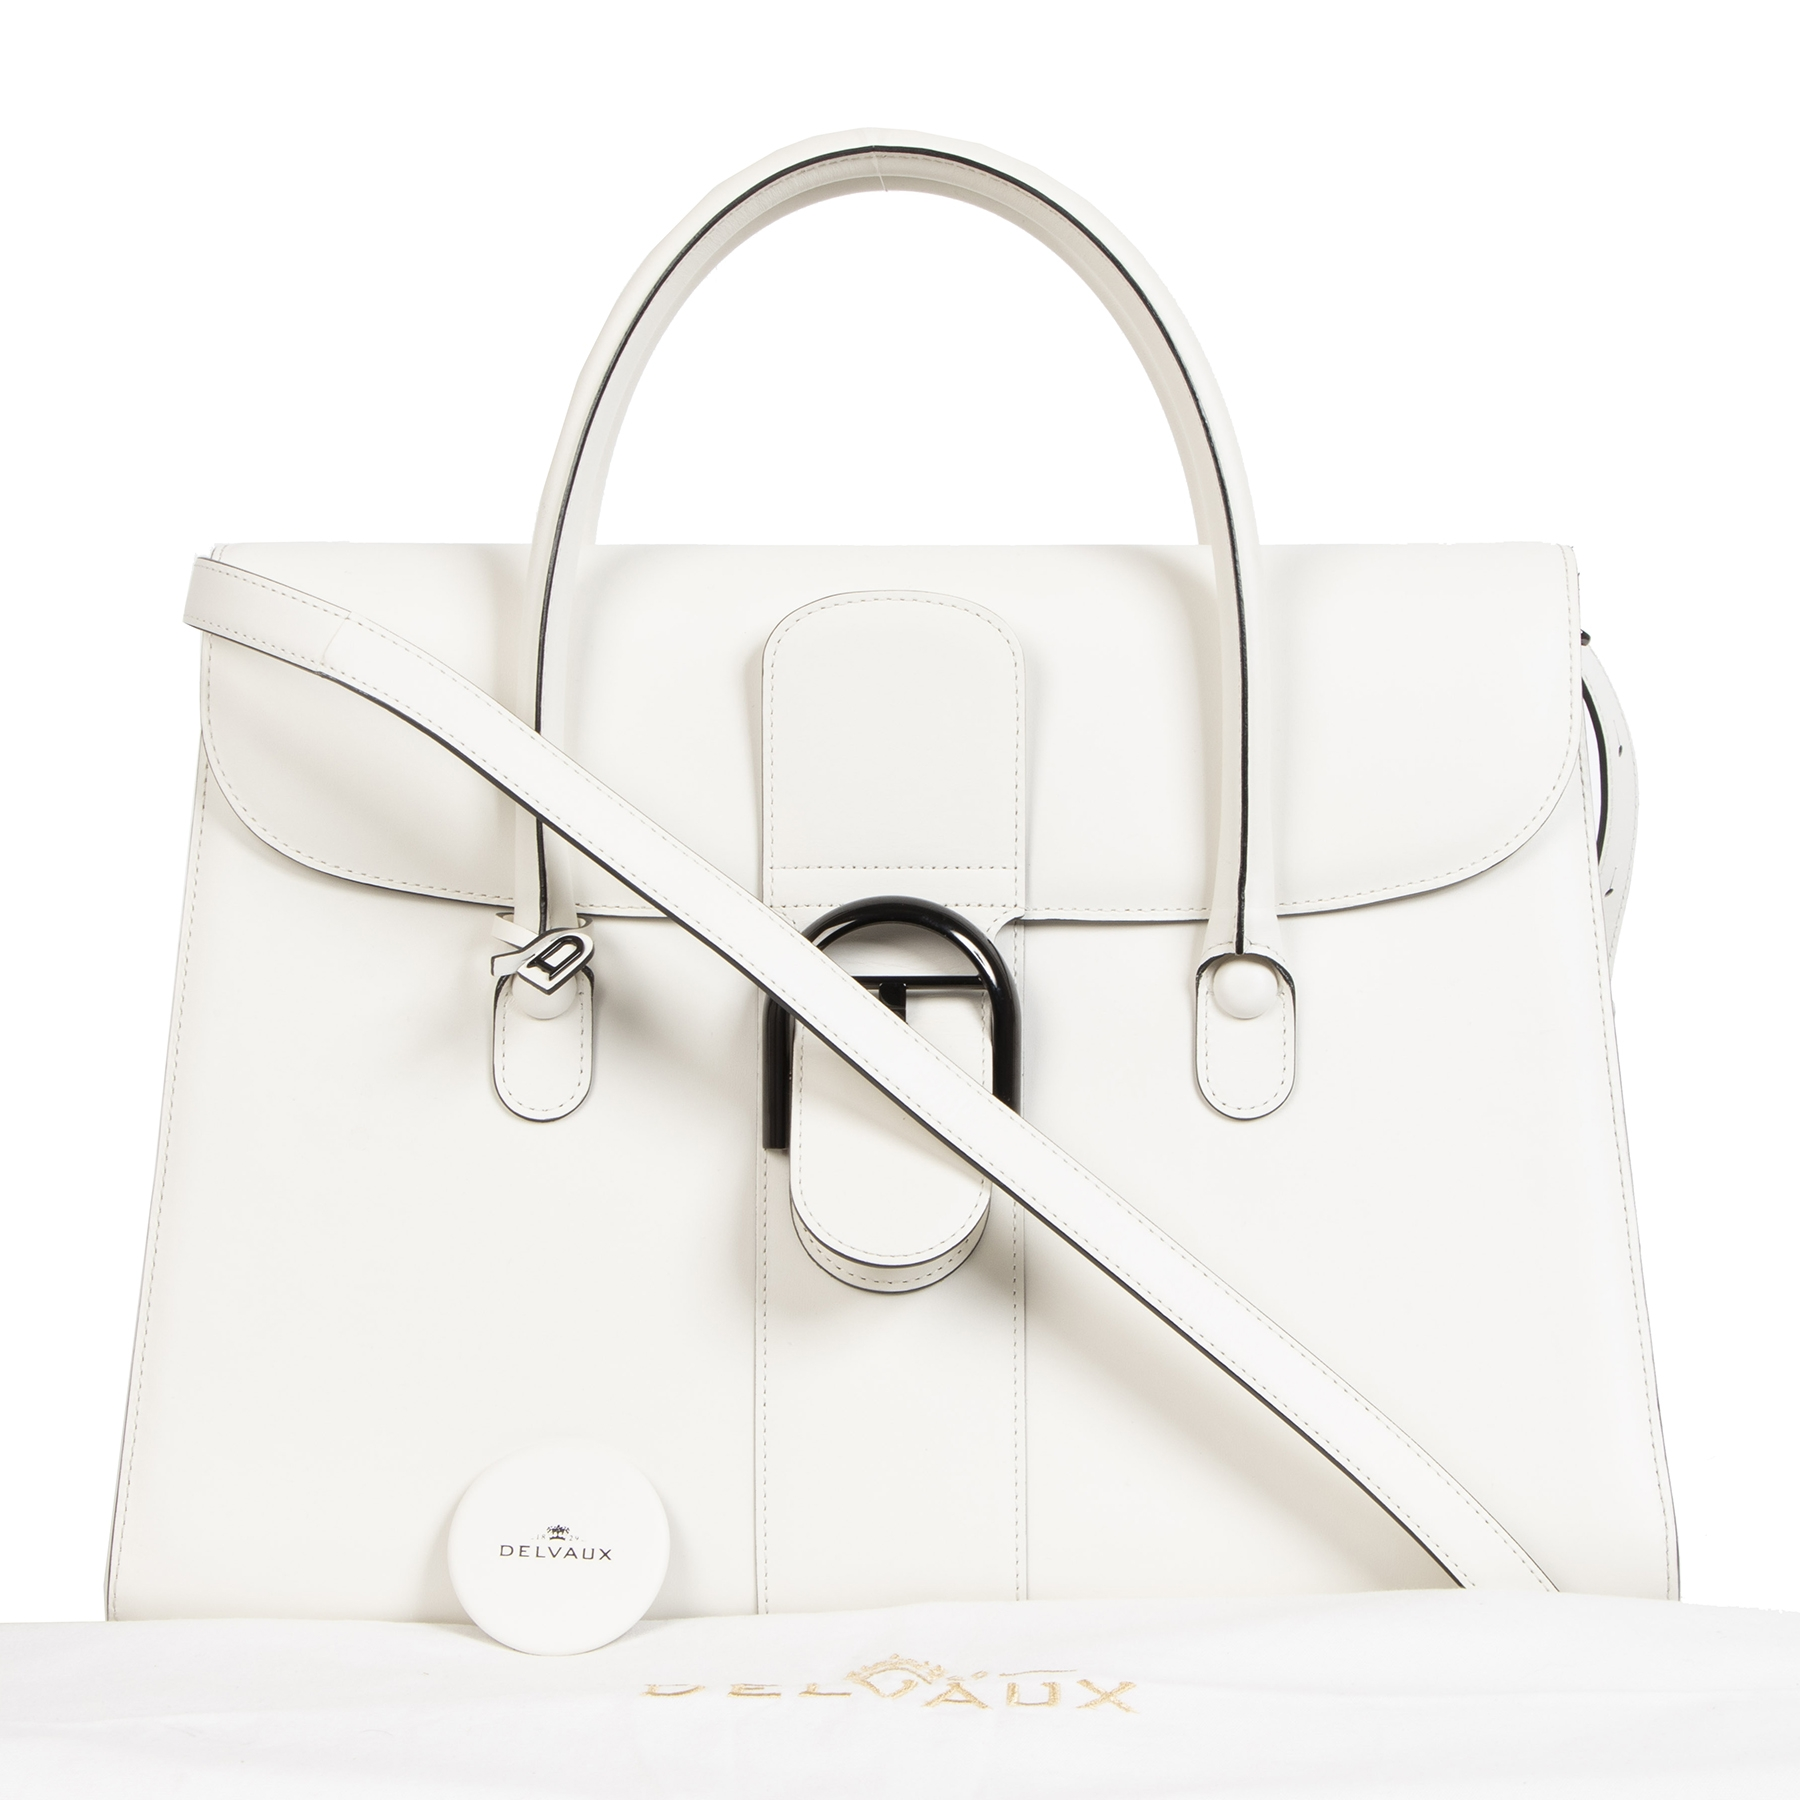 Delvaux White Brillant Double Poignee Bag in excellent condition online available